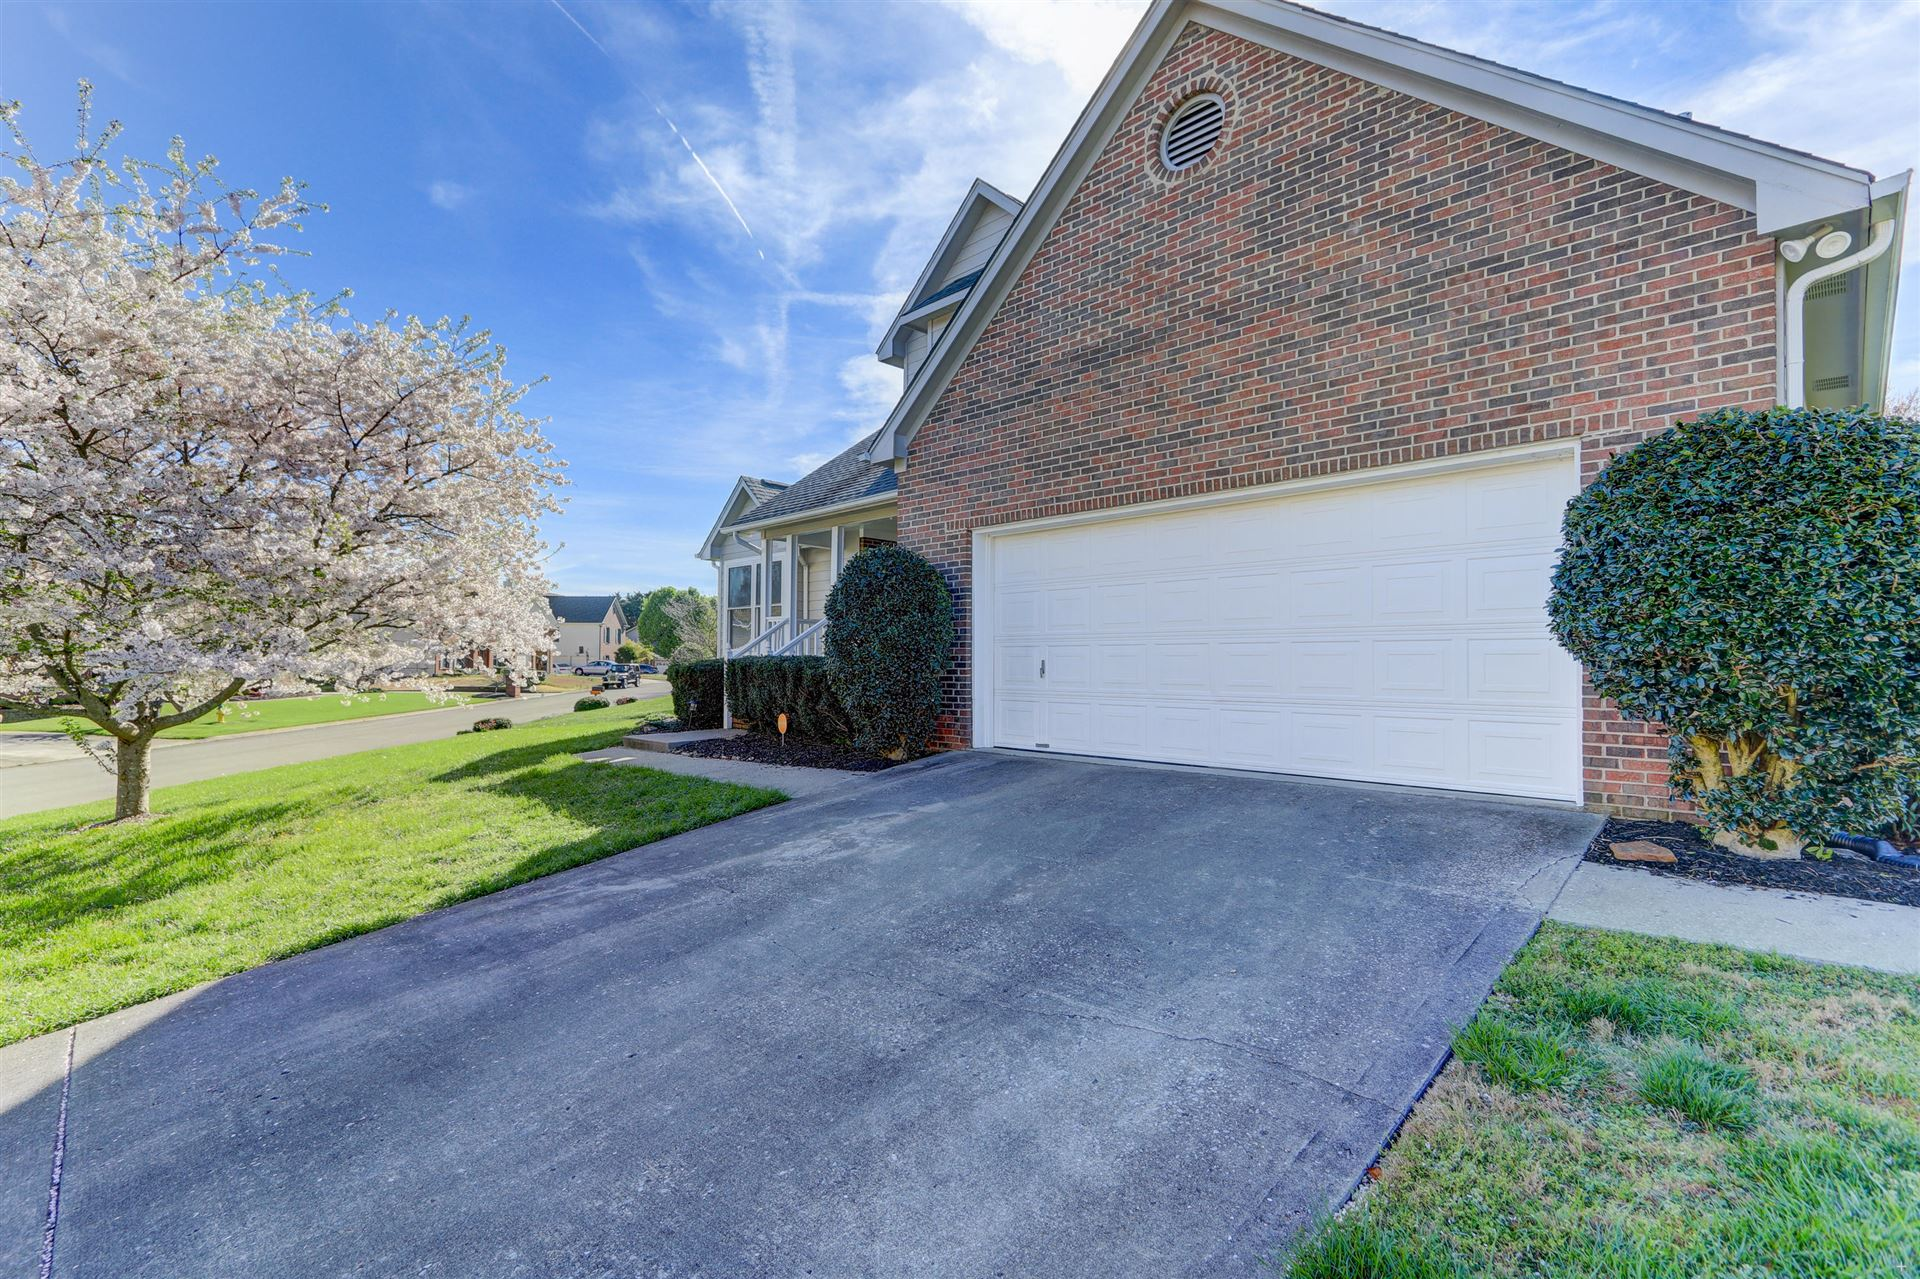 Photo of 8220 Elm Hill Circle, Knoxville, TN 37919 (MLS # 1112553)